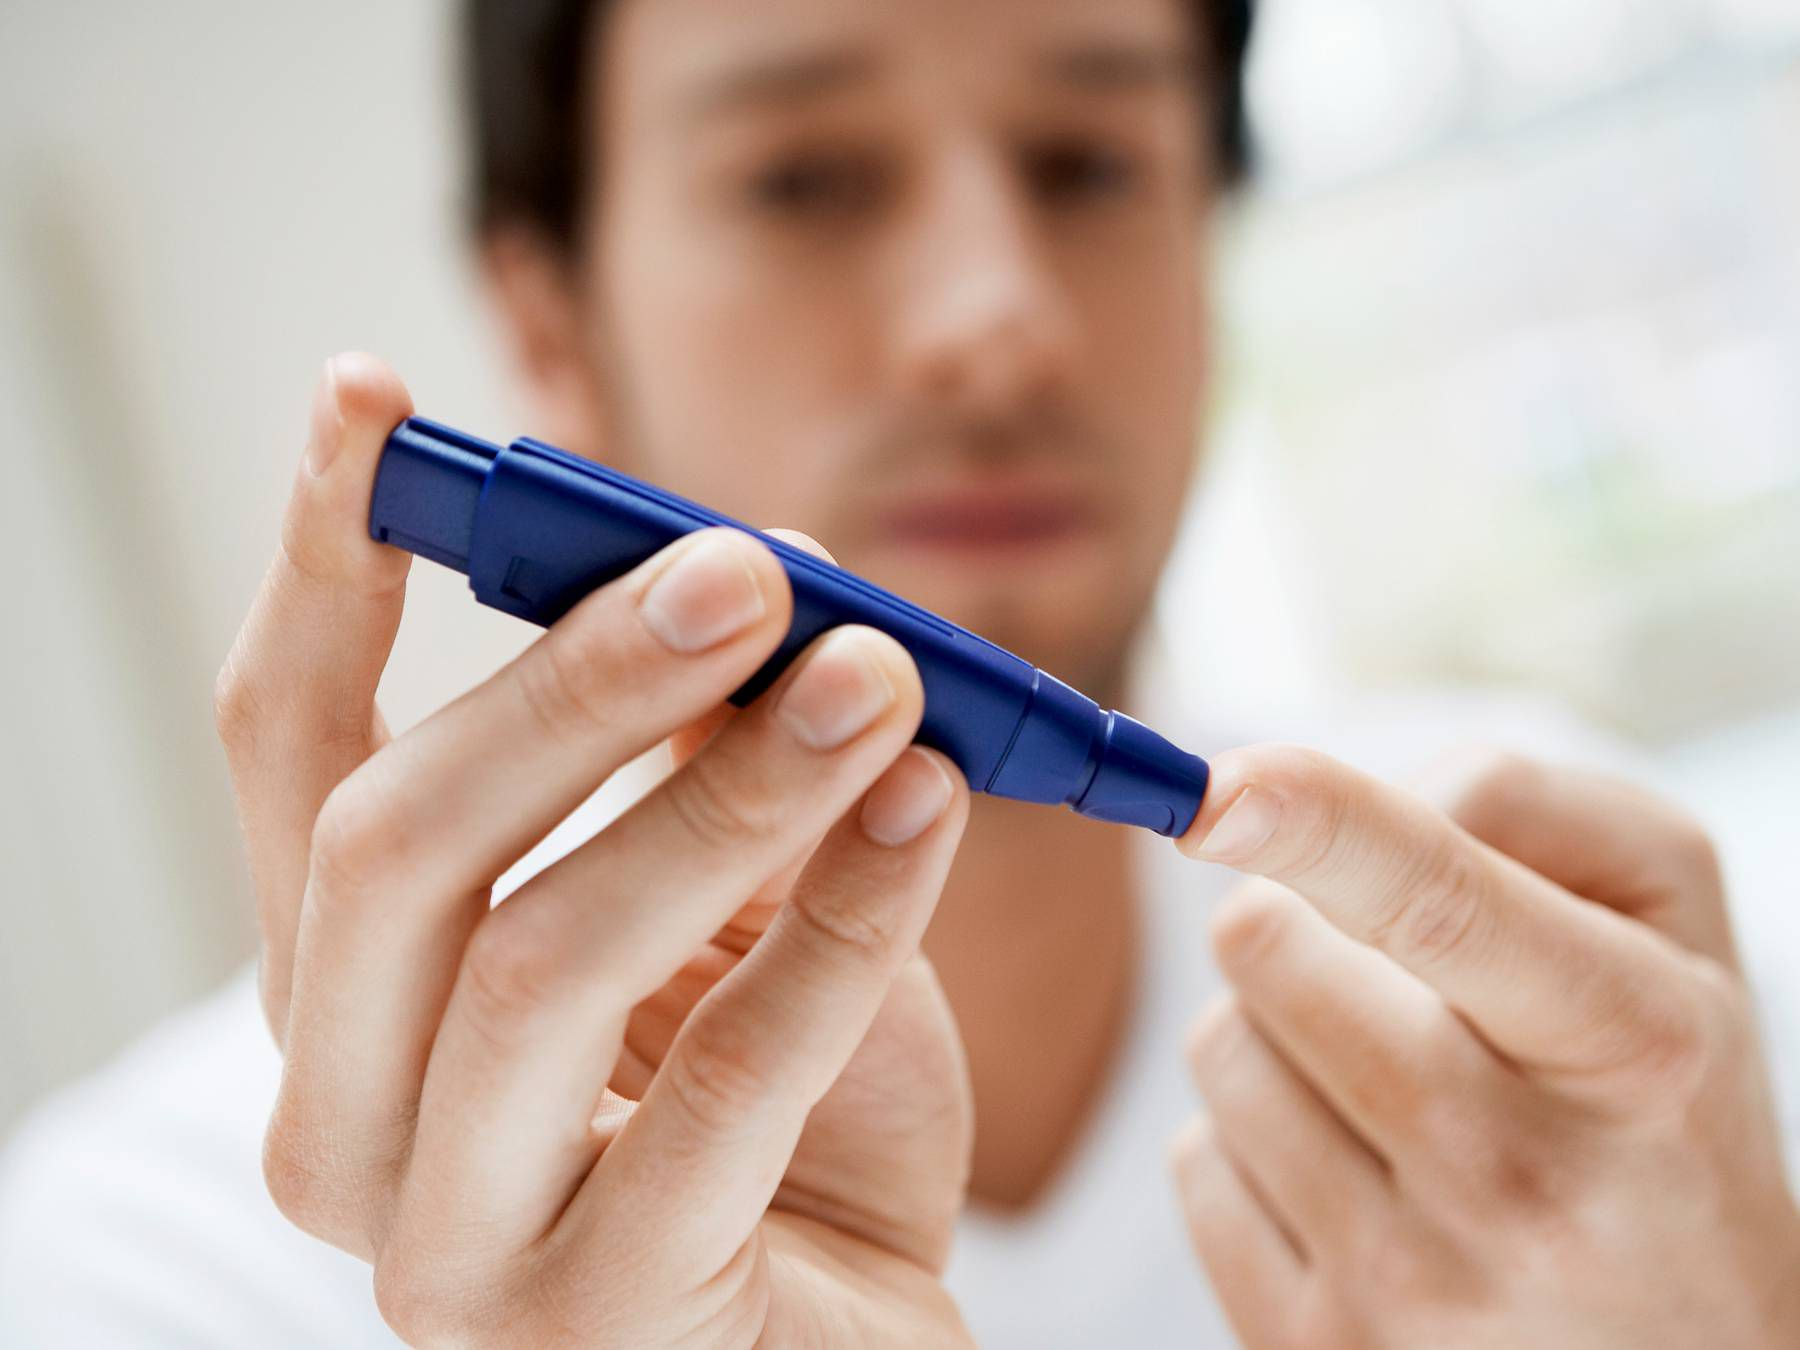 Diabetes and risk of death from infection